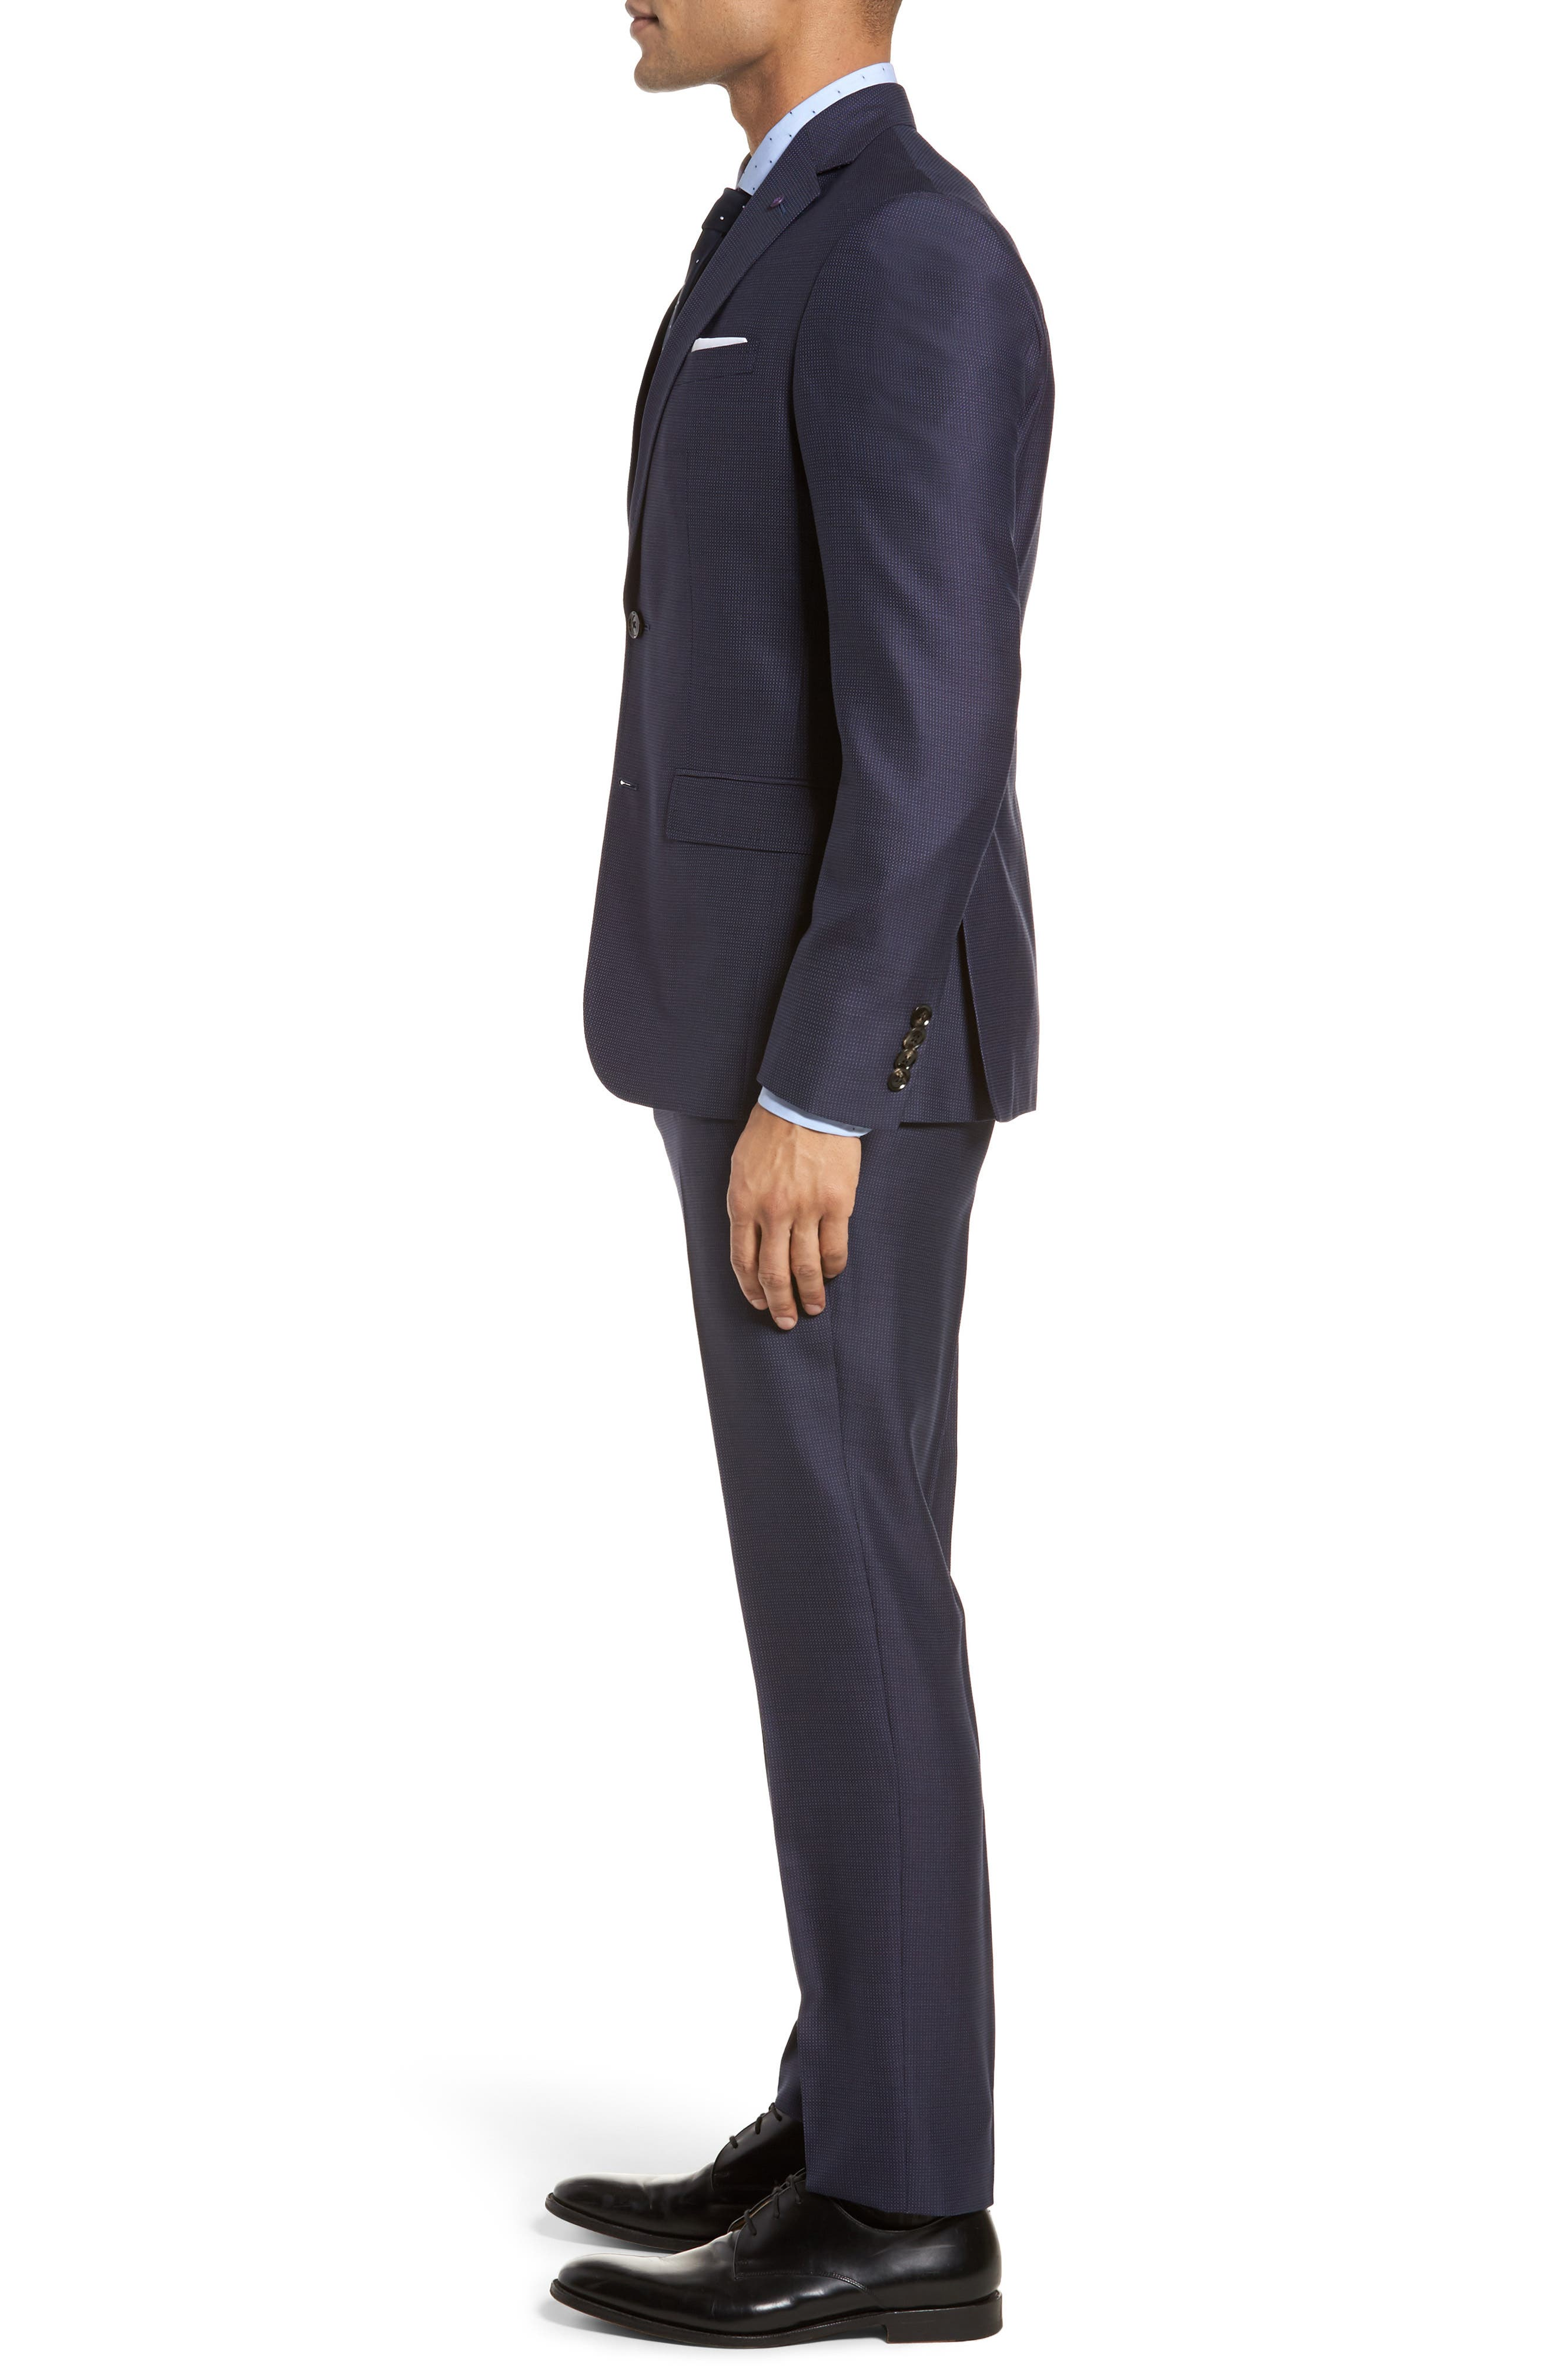 Roger Extra Slim Fit Solid Wool Suit,                             Alternate thumbnail 3, color,                             410